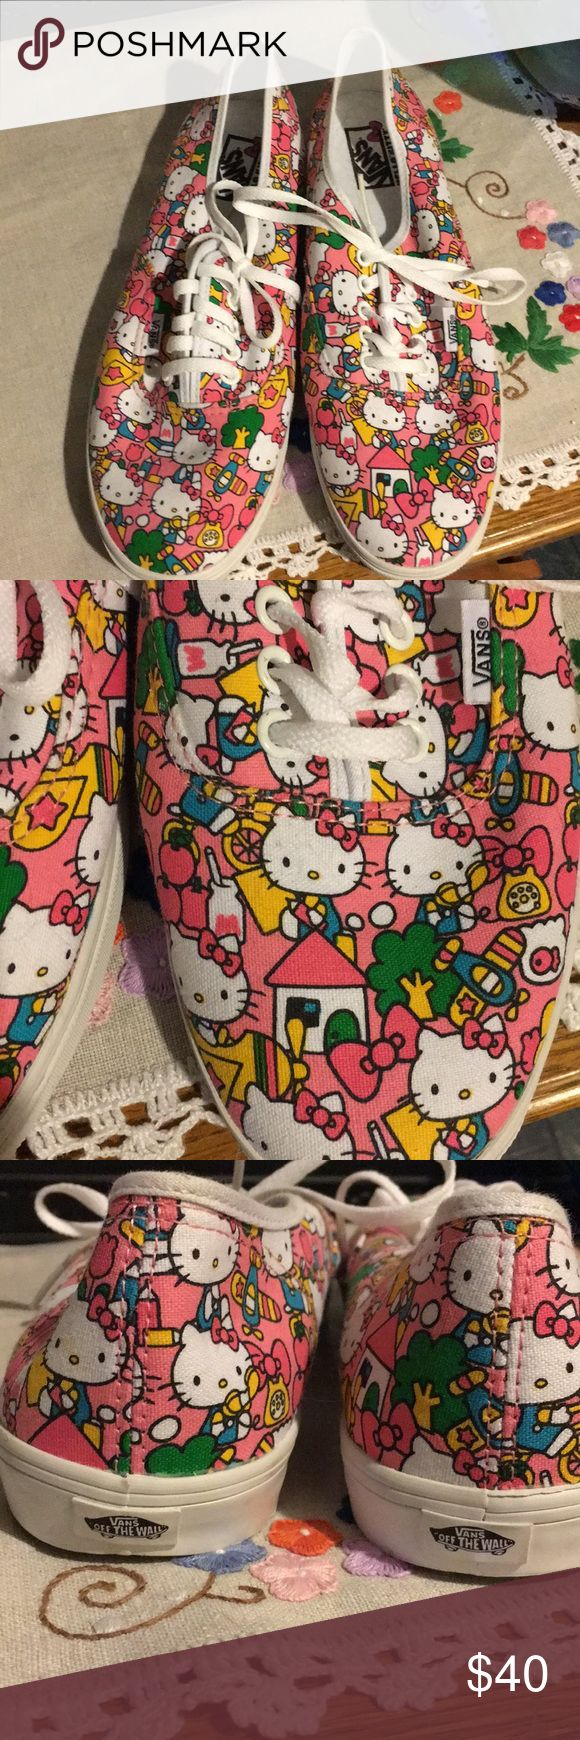 Vans authentic Hello Kitty Lace up shoes Adorable Hello Kitty shoes from Vans.  Perfect for any Hello Kitty lover.  Size 10 women's. Brand new, never worn. Vans Shoes Sneakers